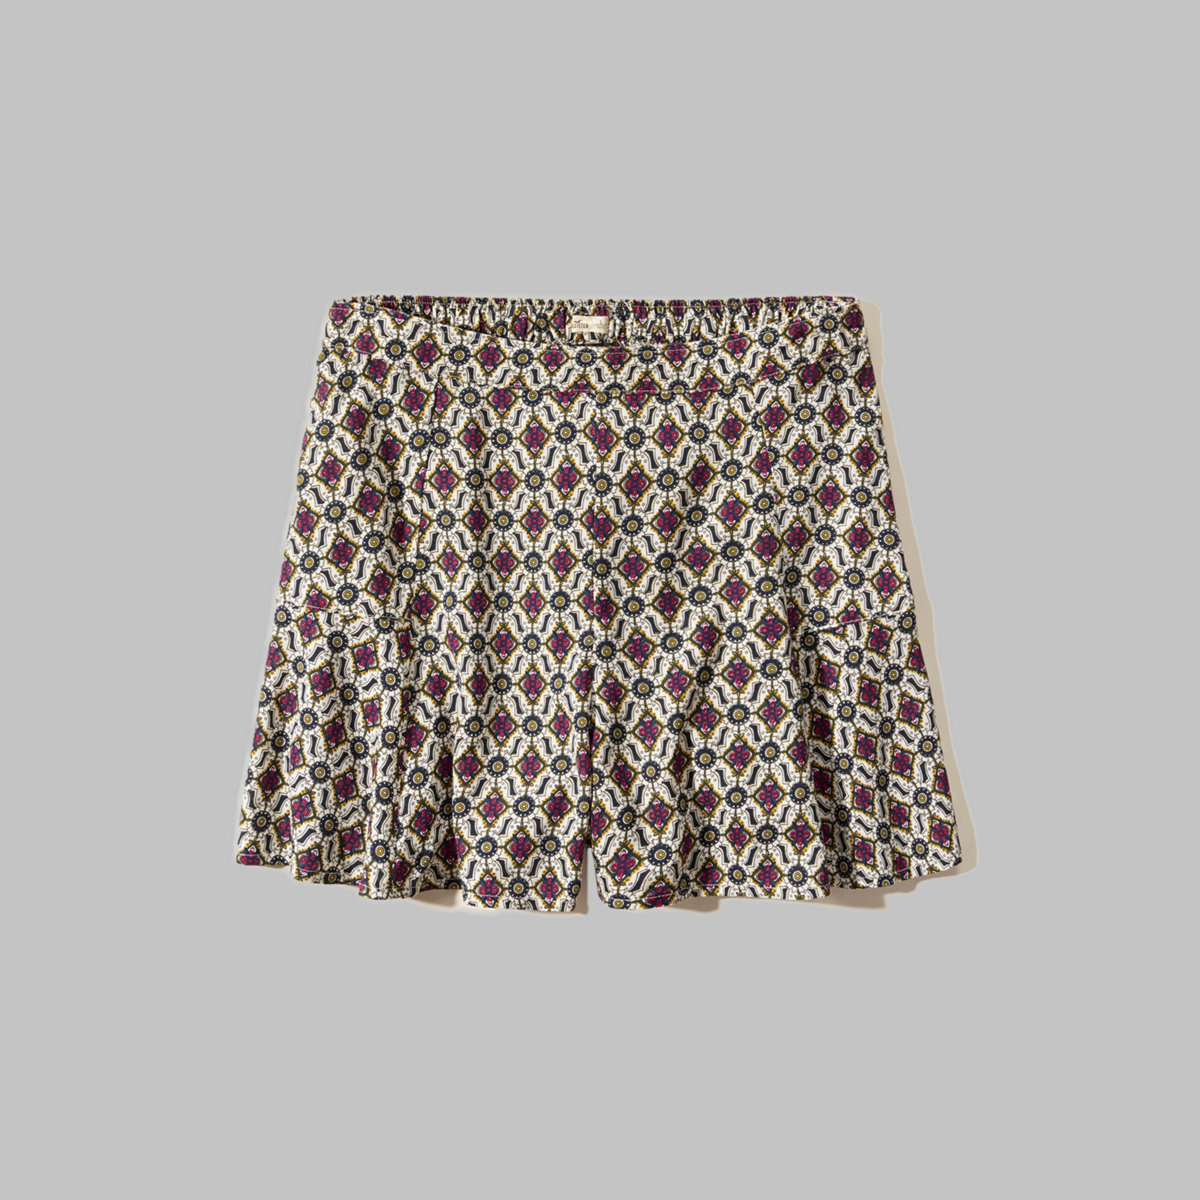 Patterned Culotte Shorts